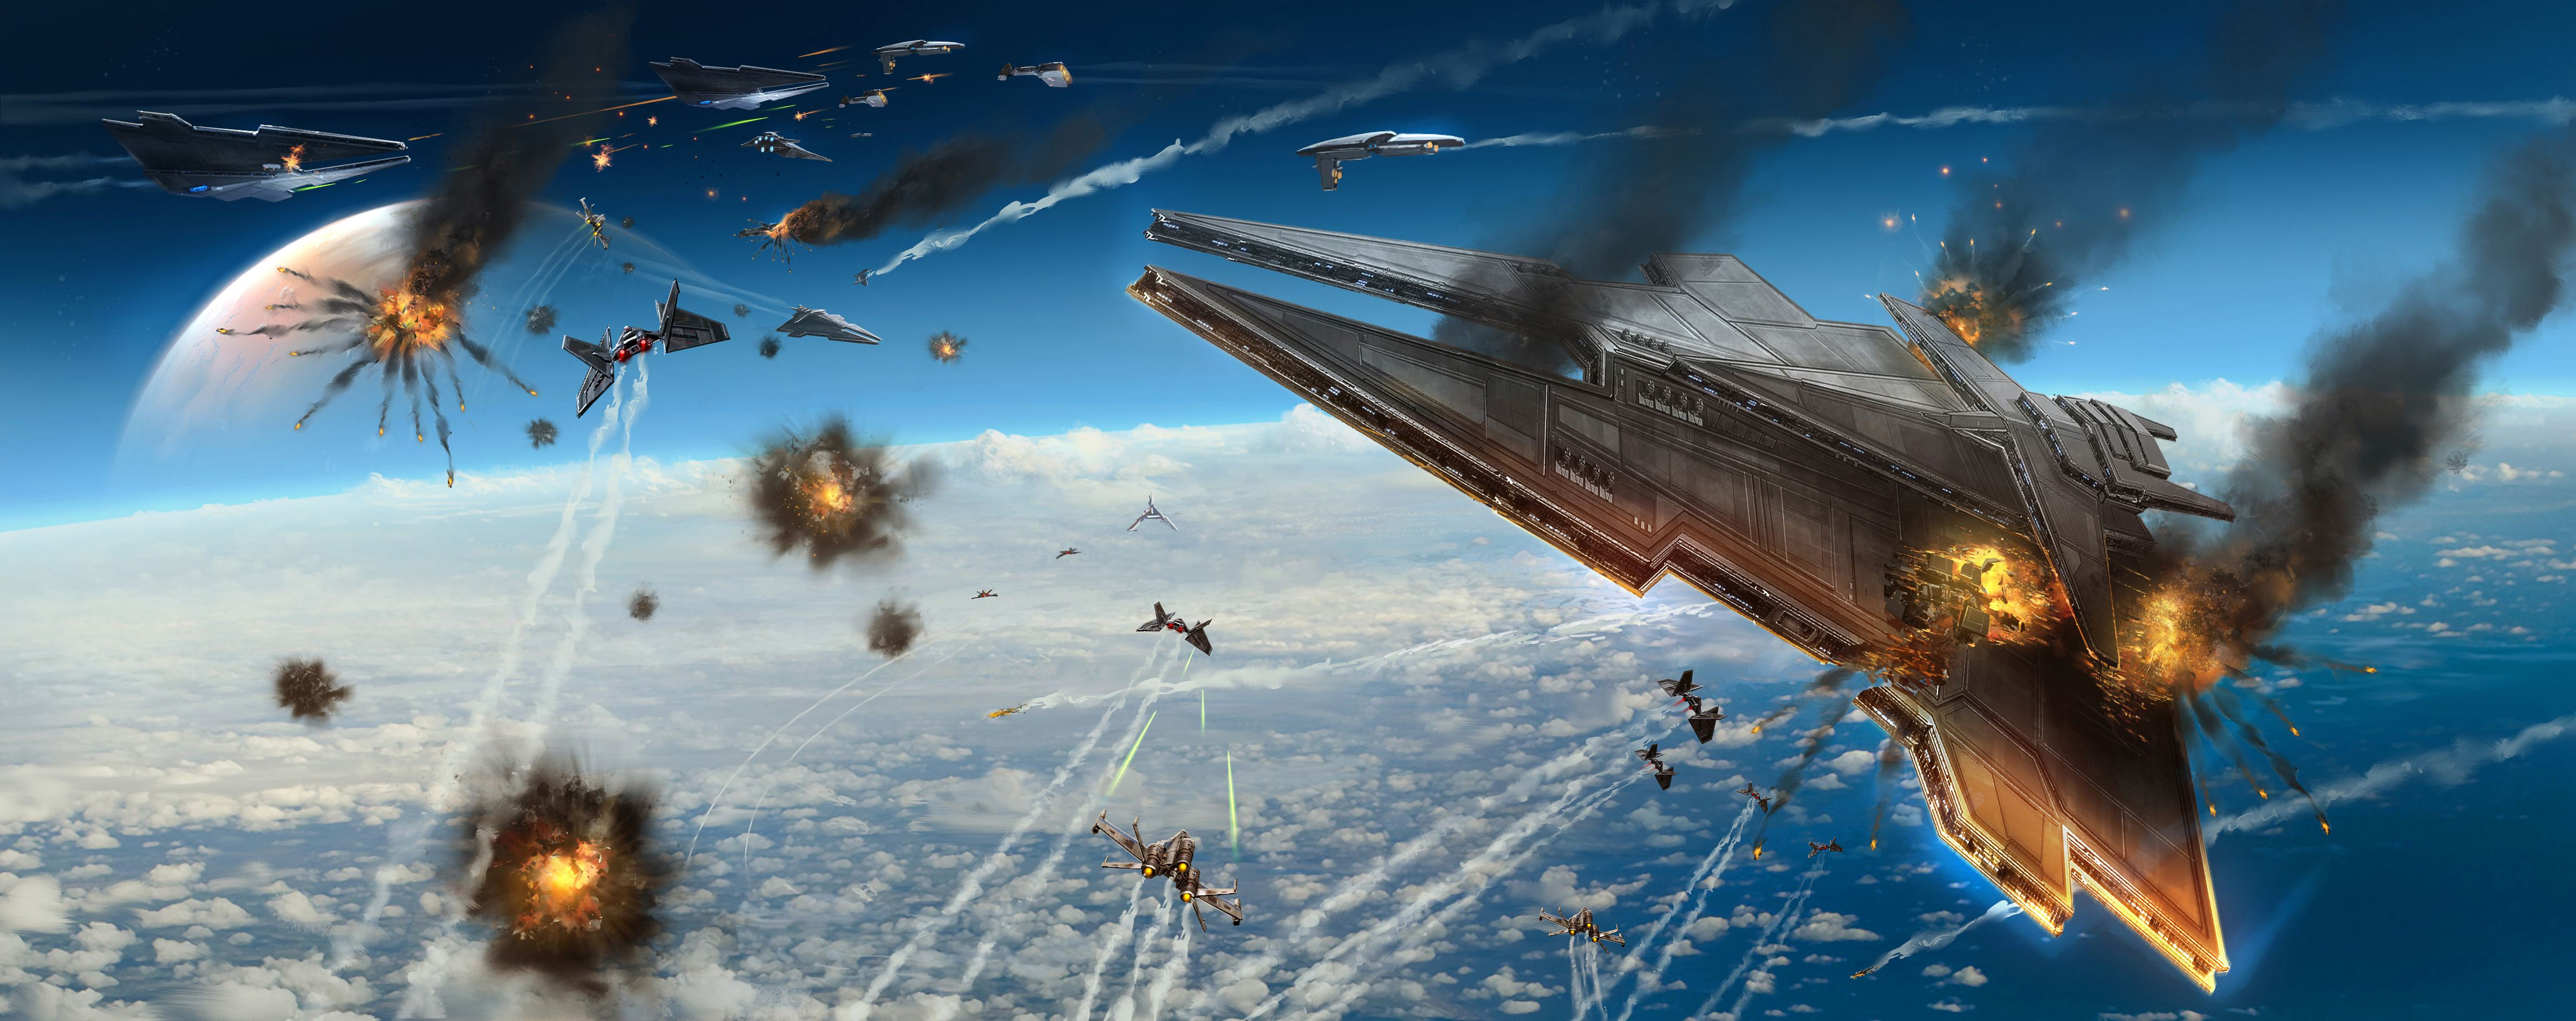 Childhood Destroyed The trouble with space battles Whim Online 4757x1885